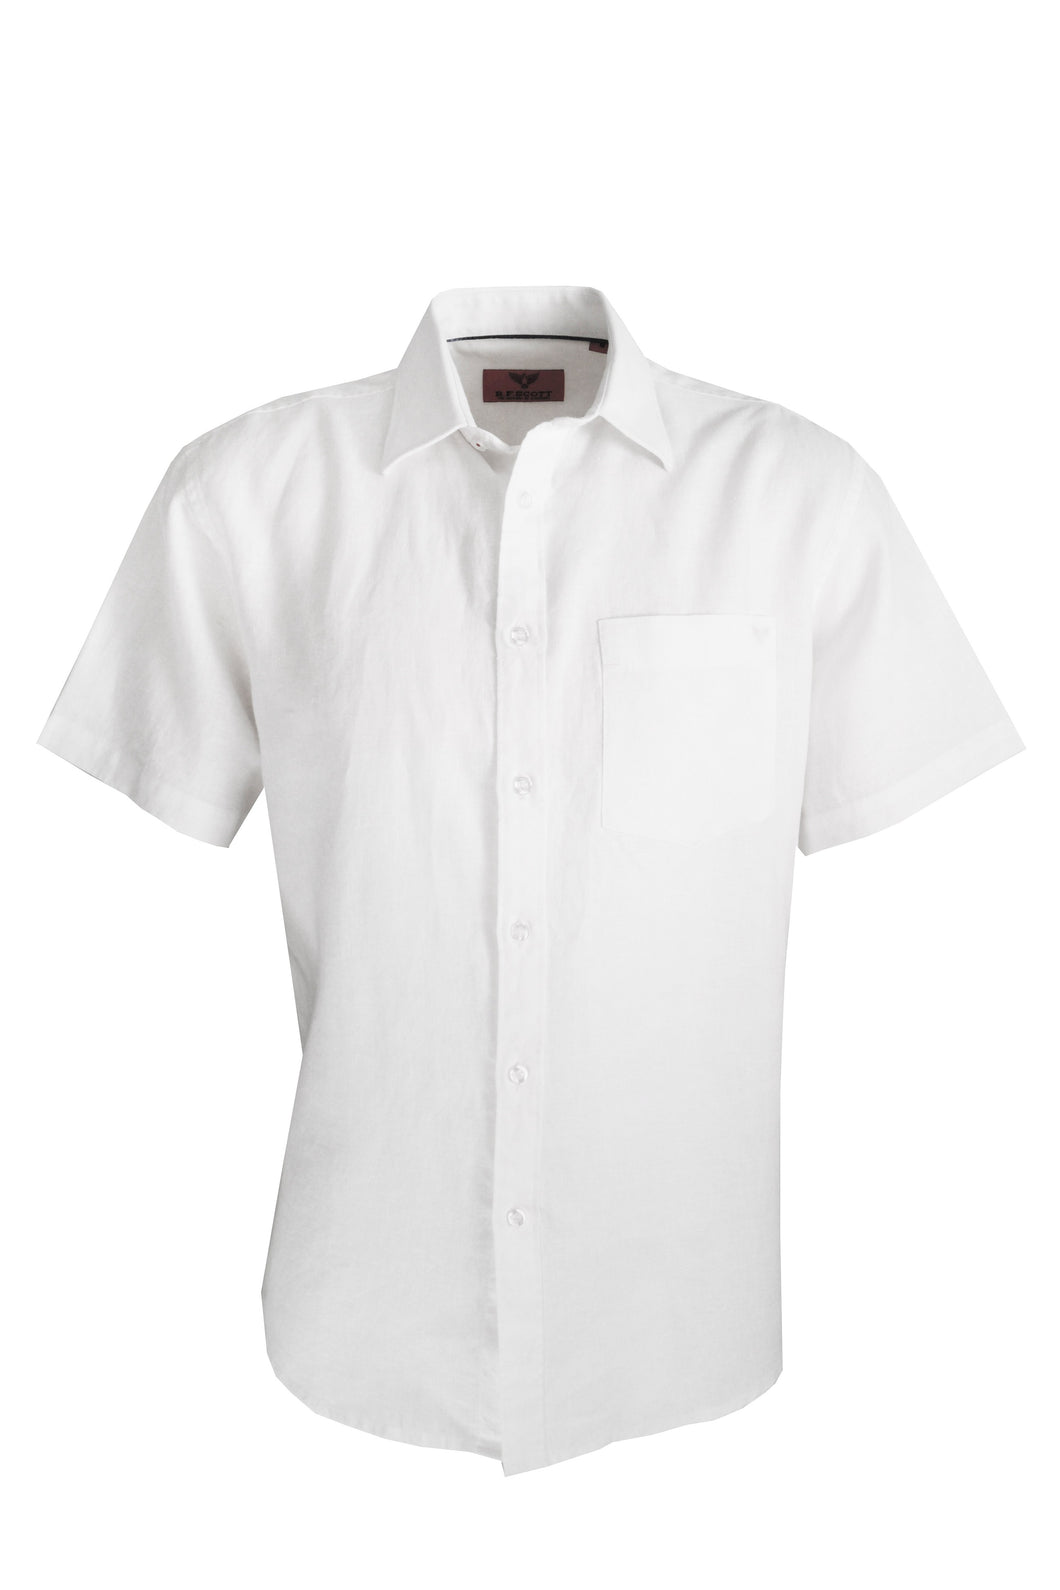 SR23574 R.F. Scott - Fields S/S Linen Shirt - White - 100